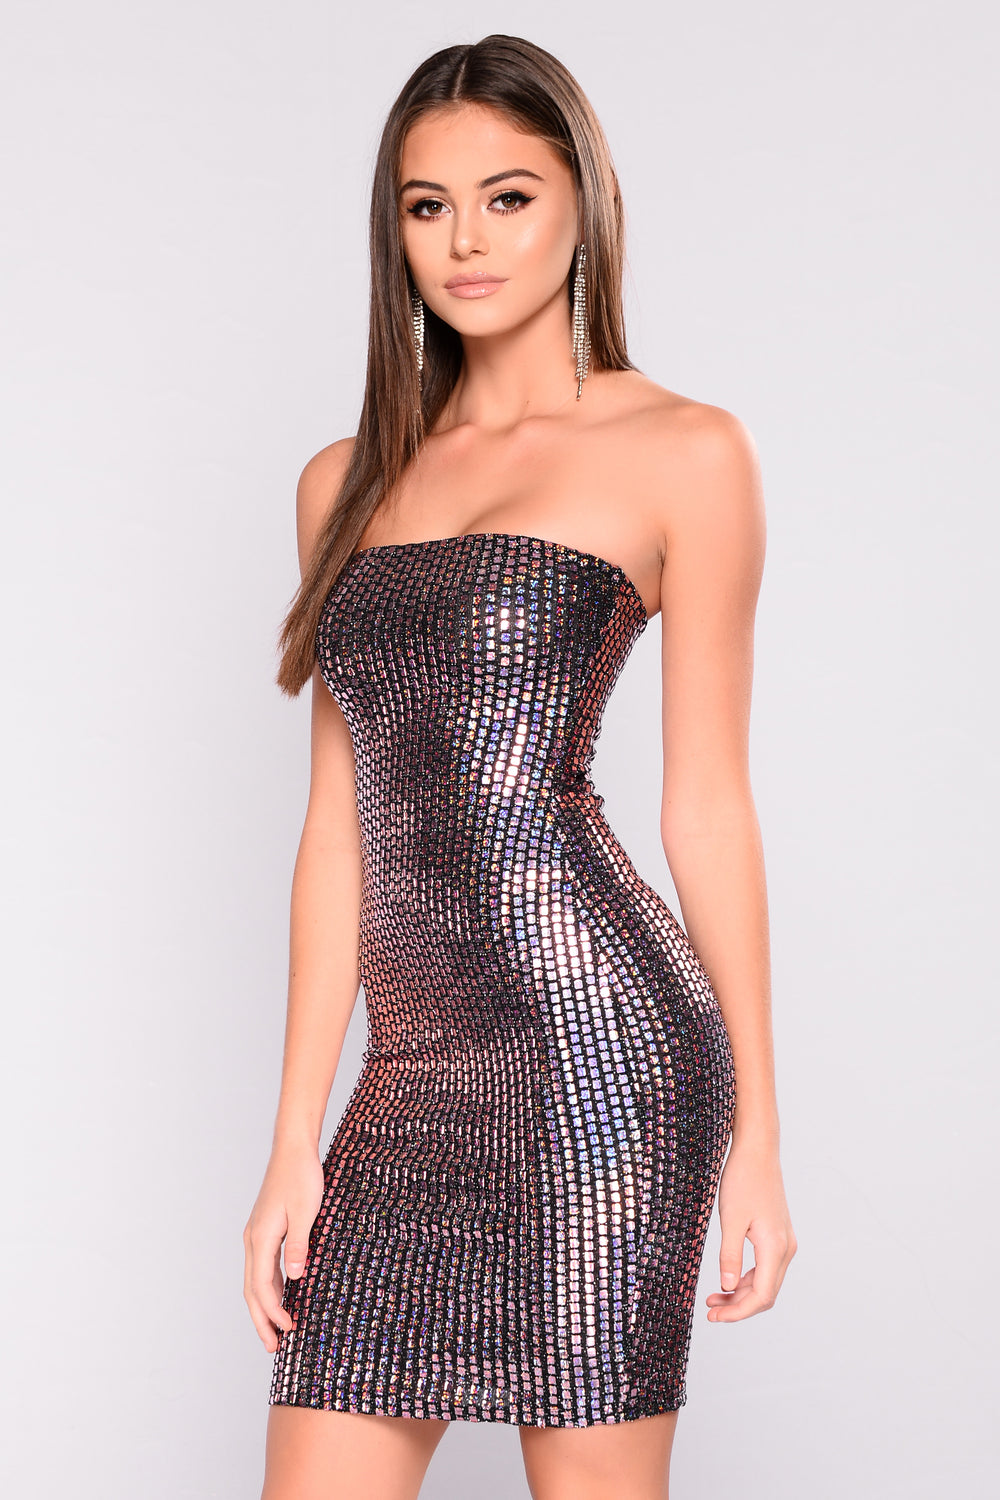 Pure Society Metallic Dress - Black/Pink